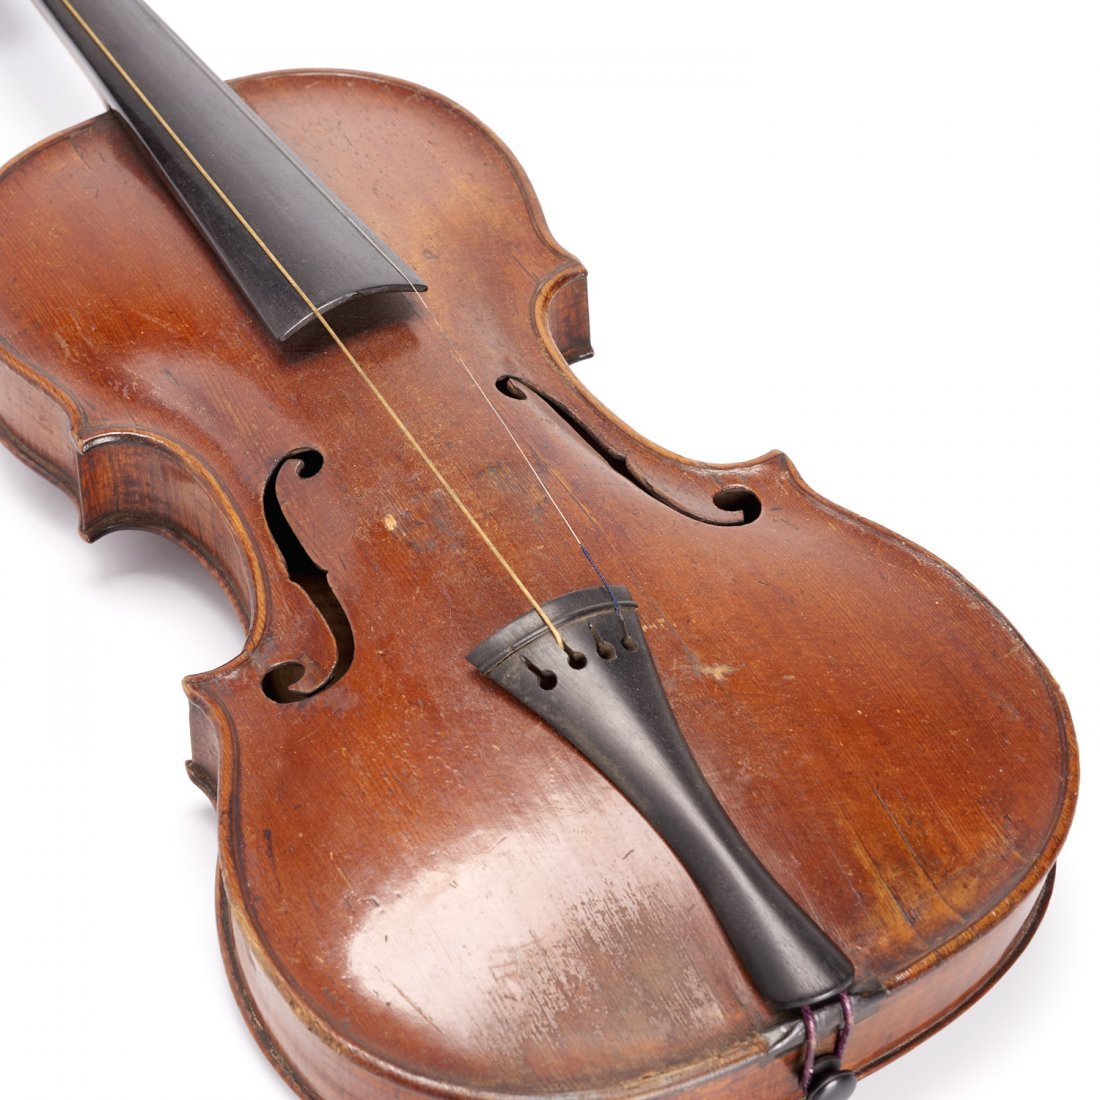 Antique violin, Robert Volkmann - 5